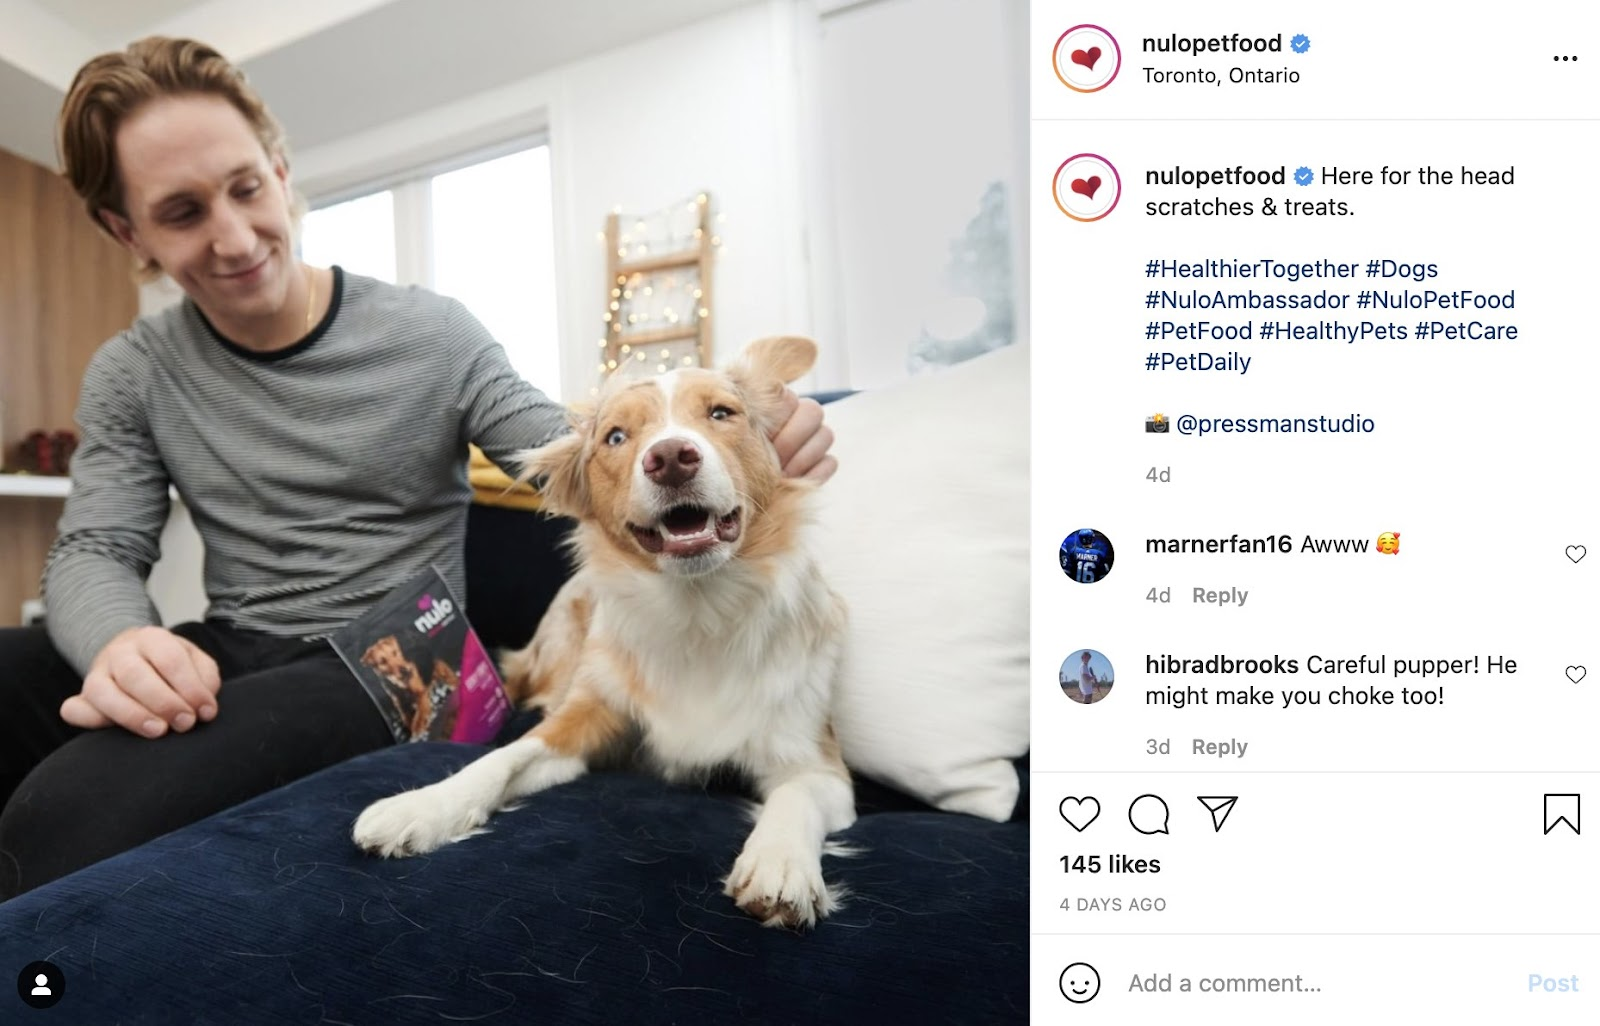 Nulo Instagram Post of man with dog